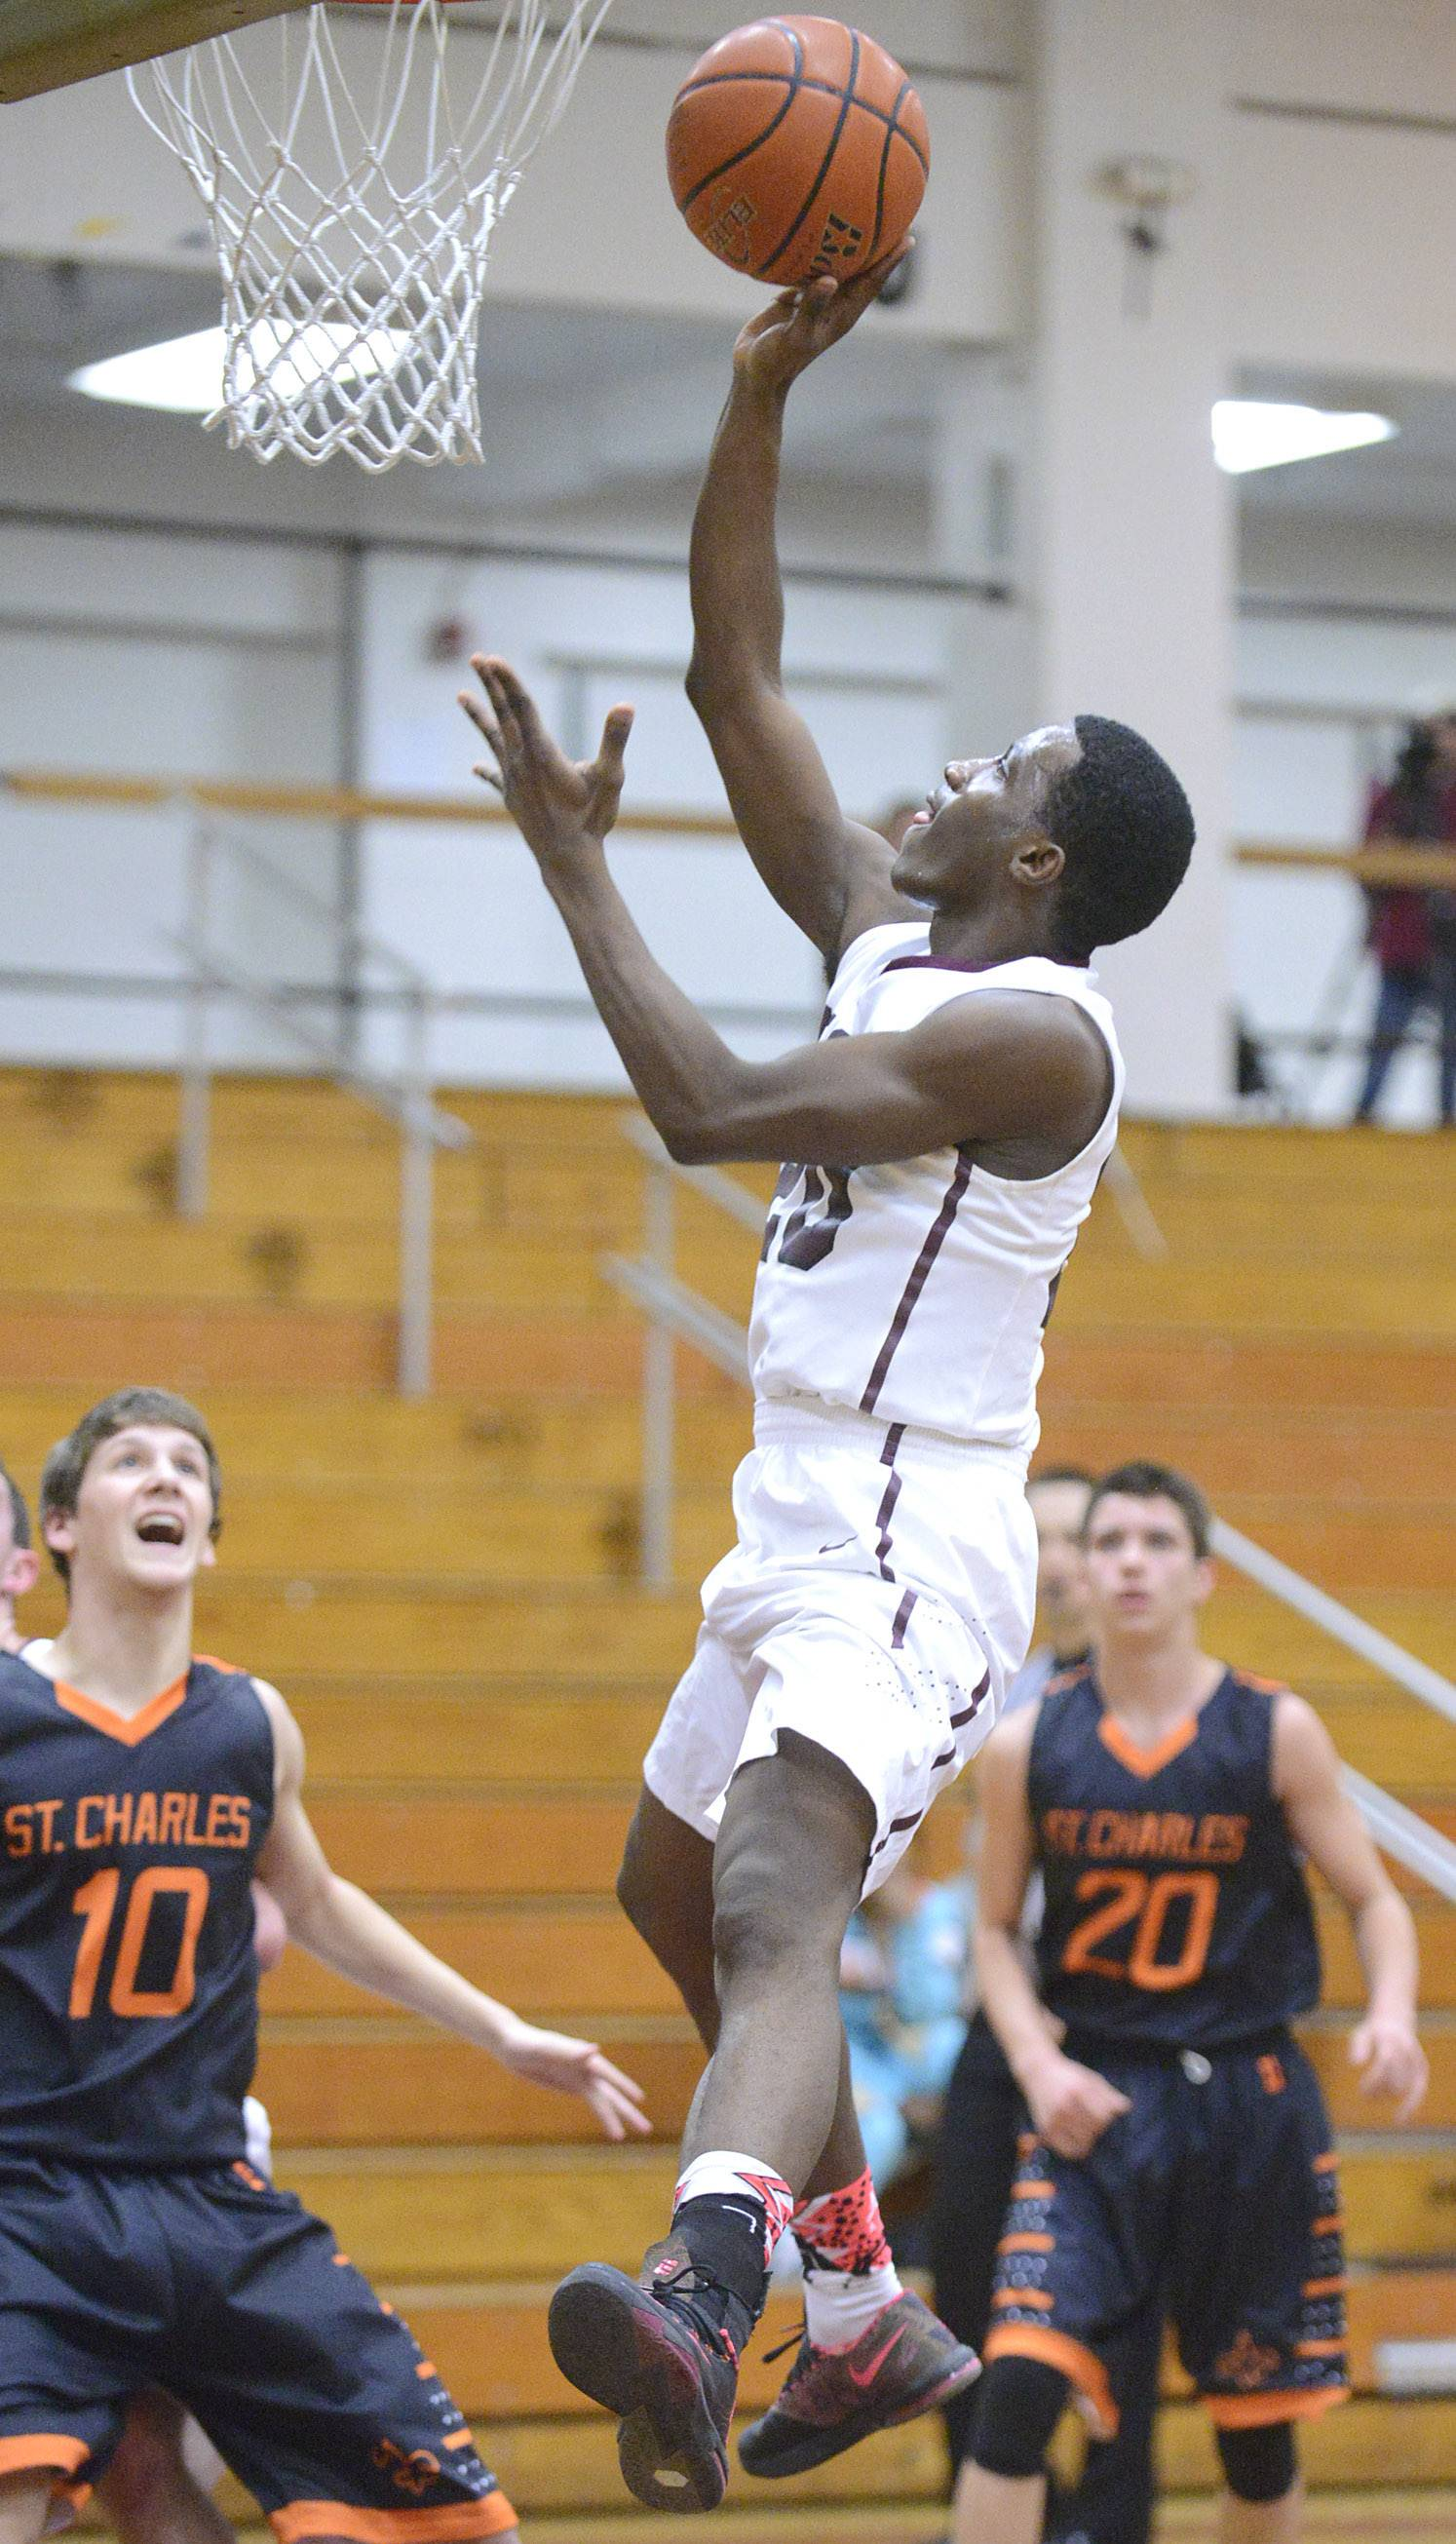 Elgin's Isaiah Butler soars to sink a basket over St. Charles East in the second quarter on Friday.